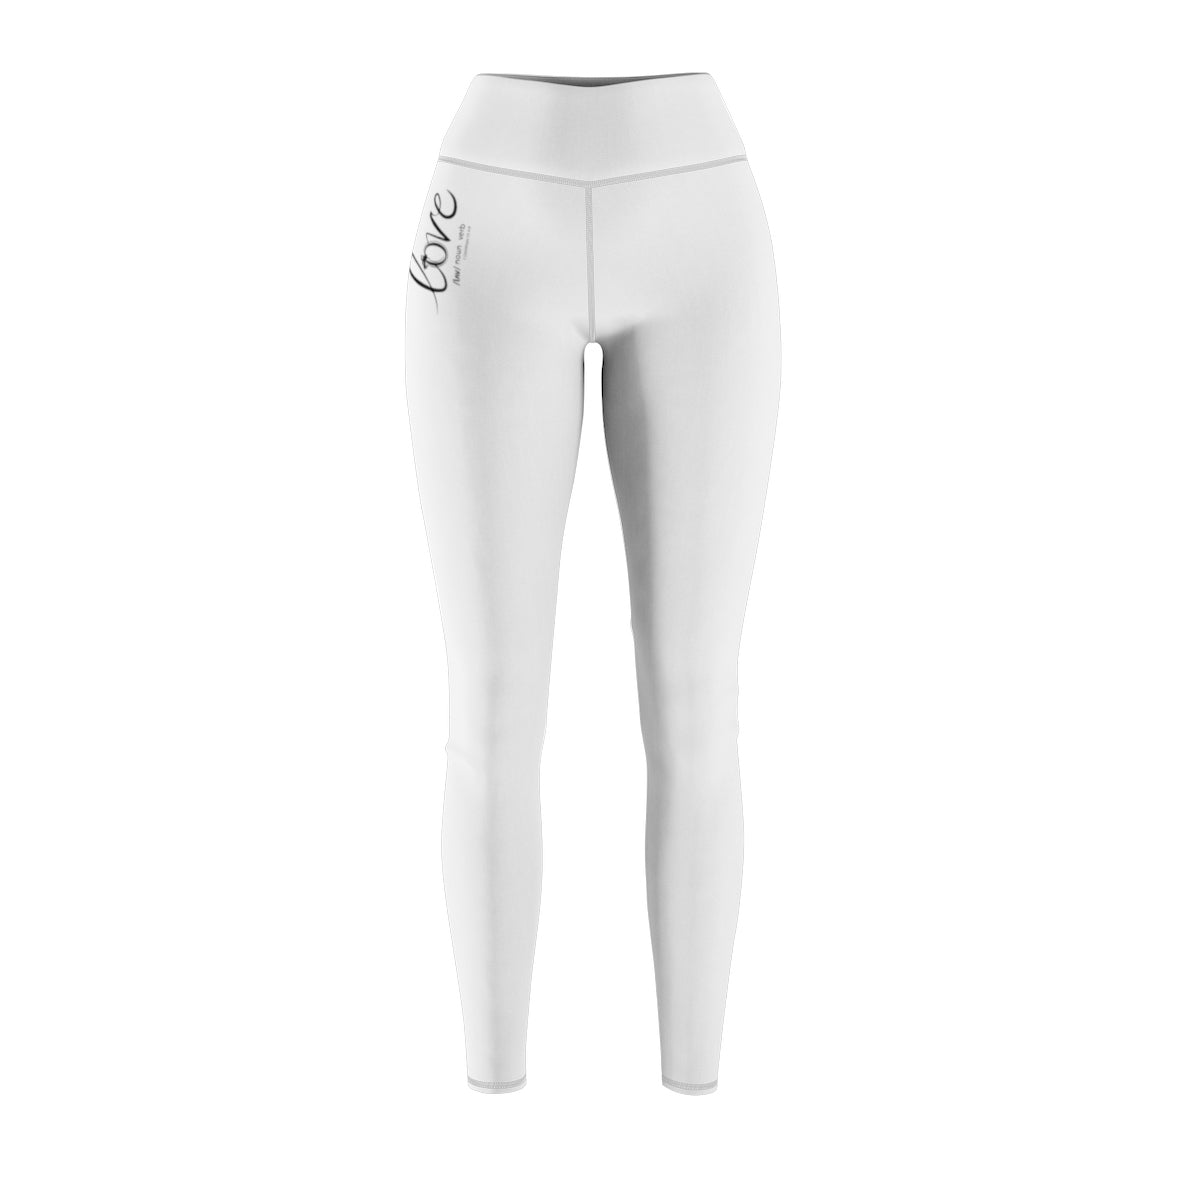 Odyssey Women's Love Sport Leggings - White - All Over Prints - Odyssey By Yendi